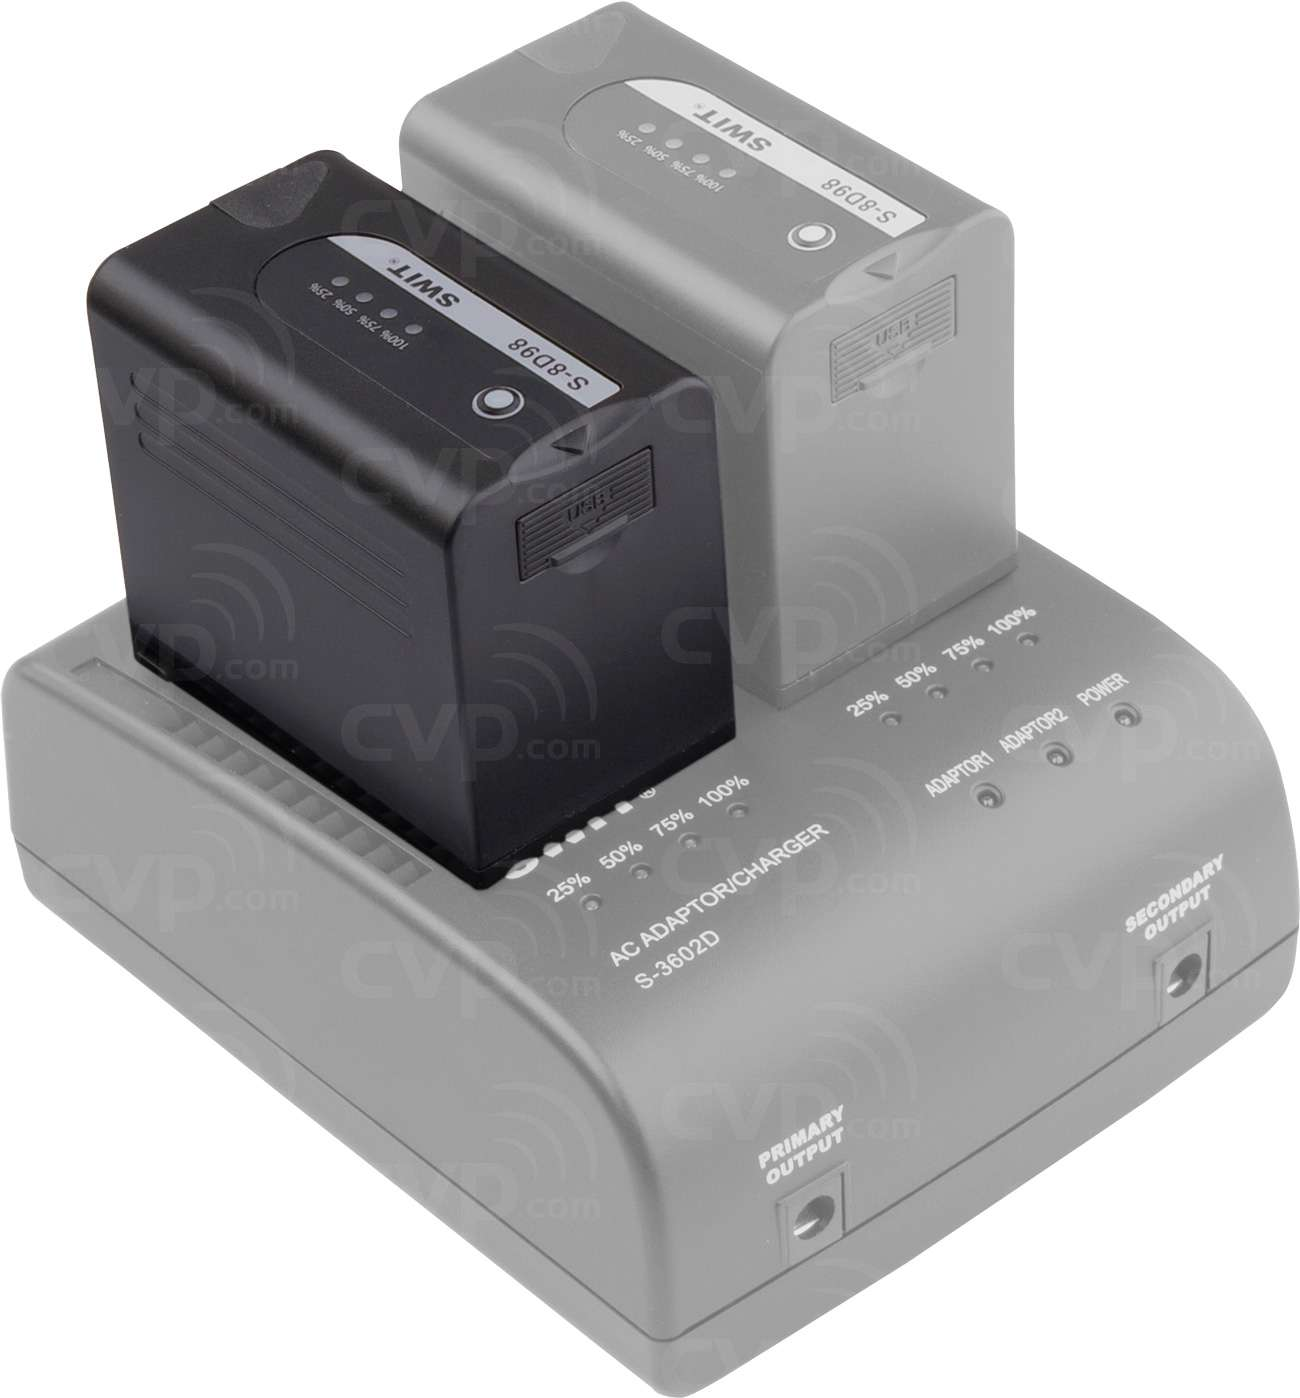 Swit S-8D98 Panasonic Battery - Additional battery and charger not